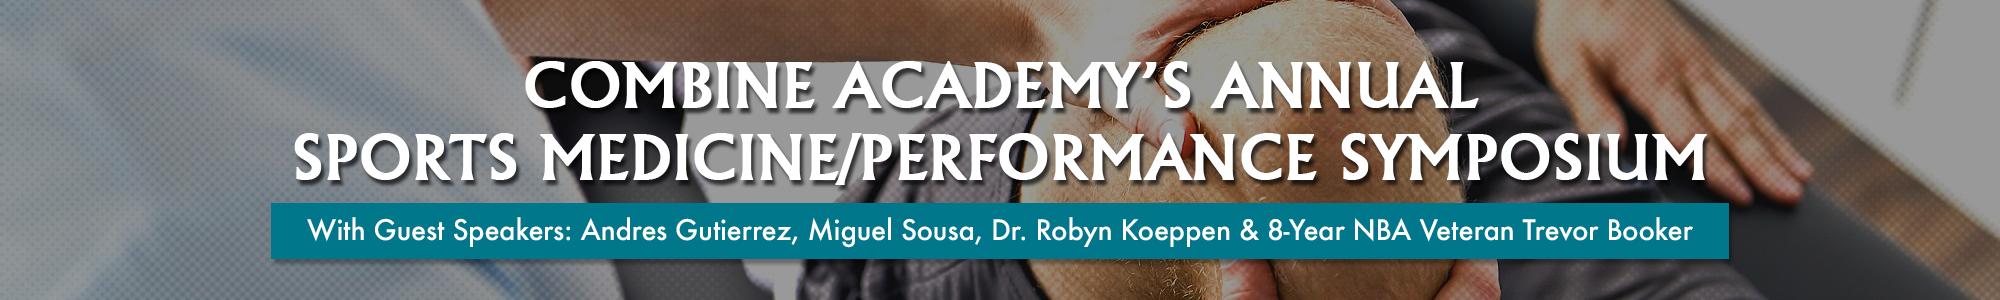 Sports Medicine Performance Symposium Banner